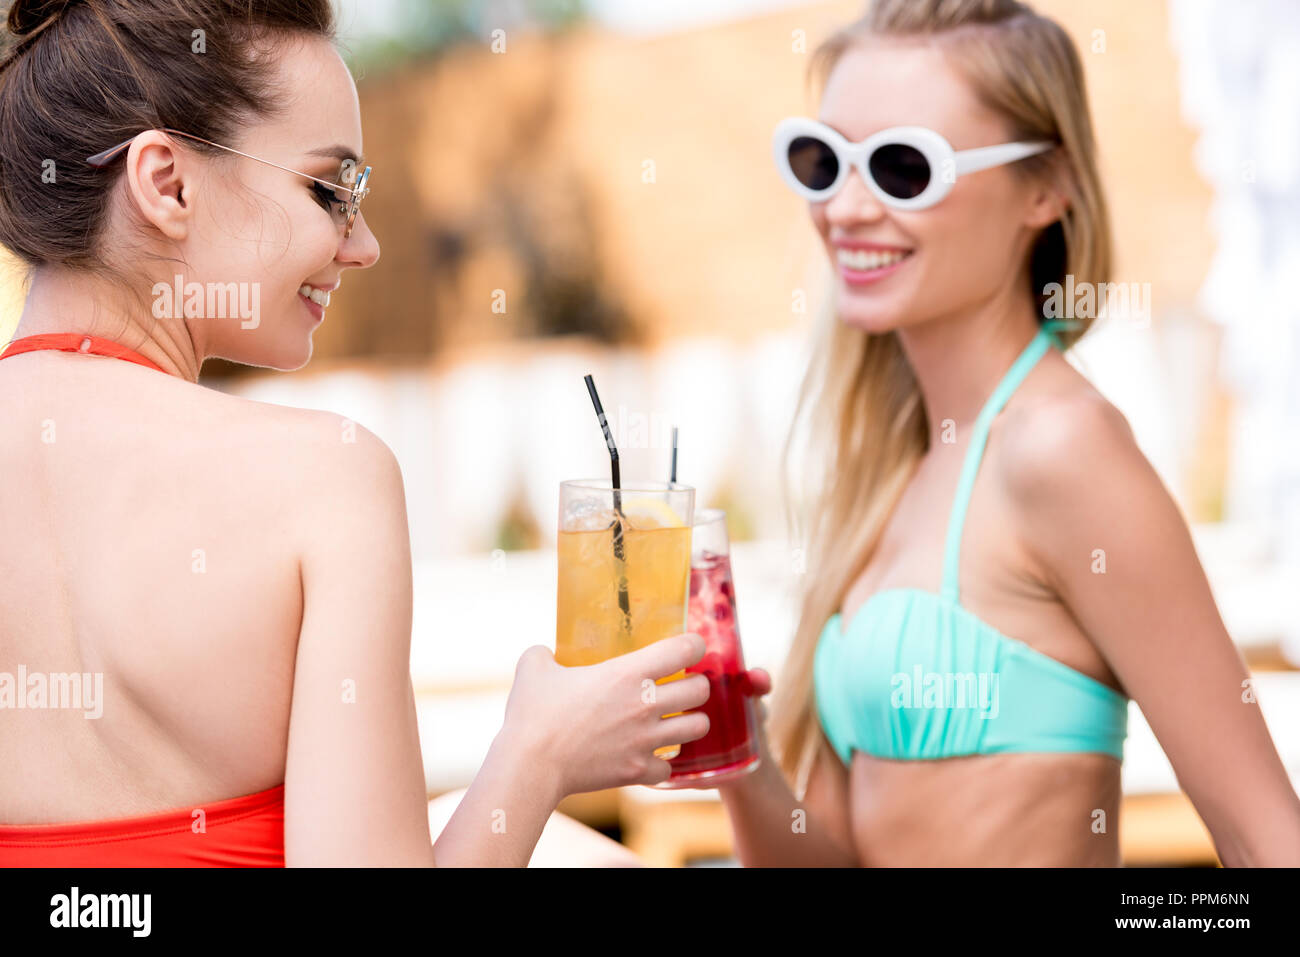 happy young women clinking glasses of cocktails at poolside - Stock Image